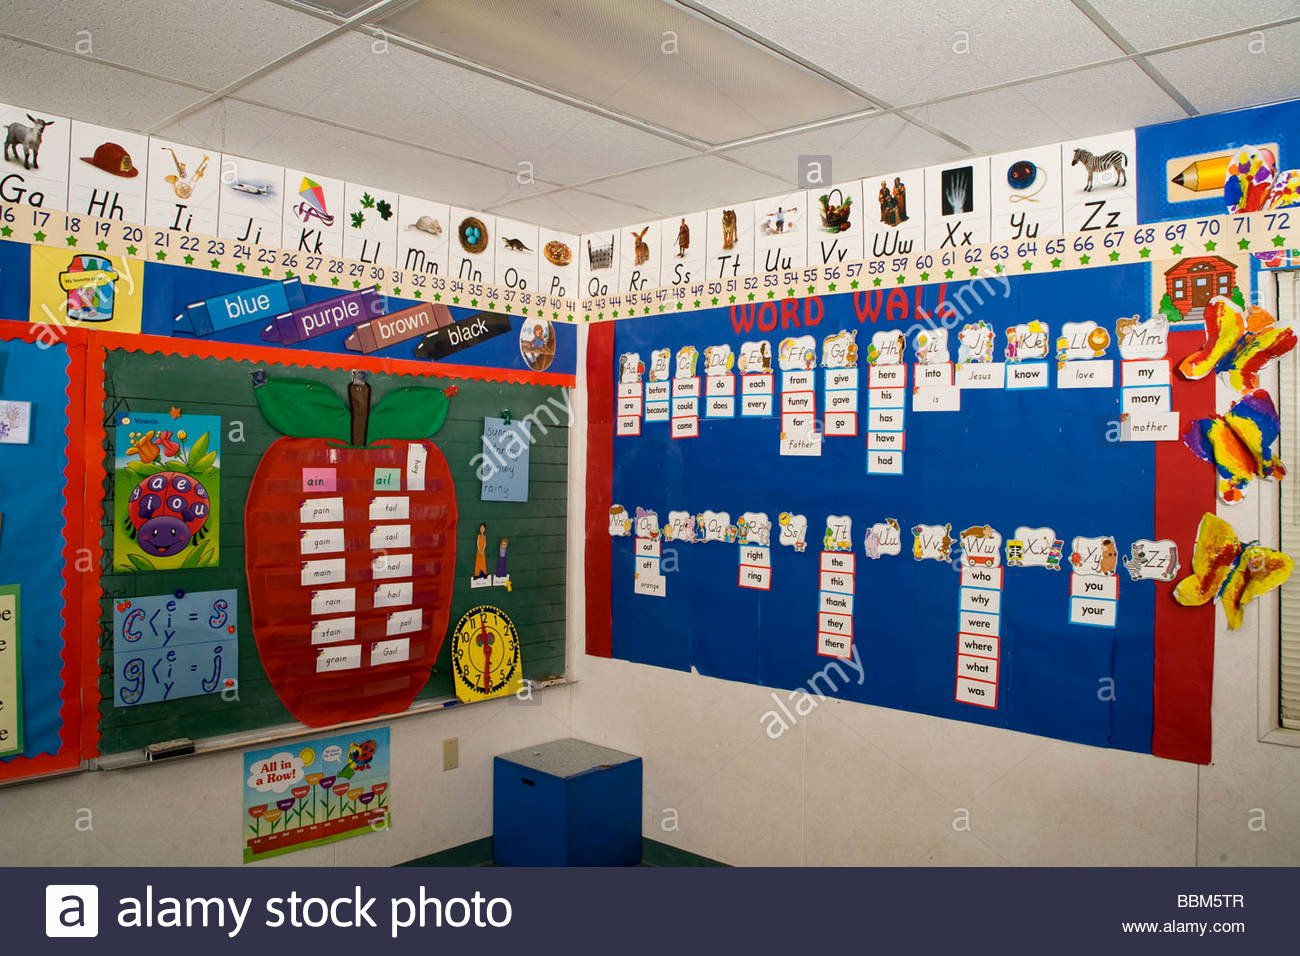 Alphabet Poster for Classroom Awesome Alphabet Posters Displayed In Kindergarten Classroom